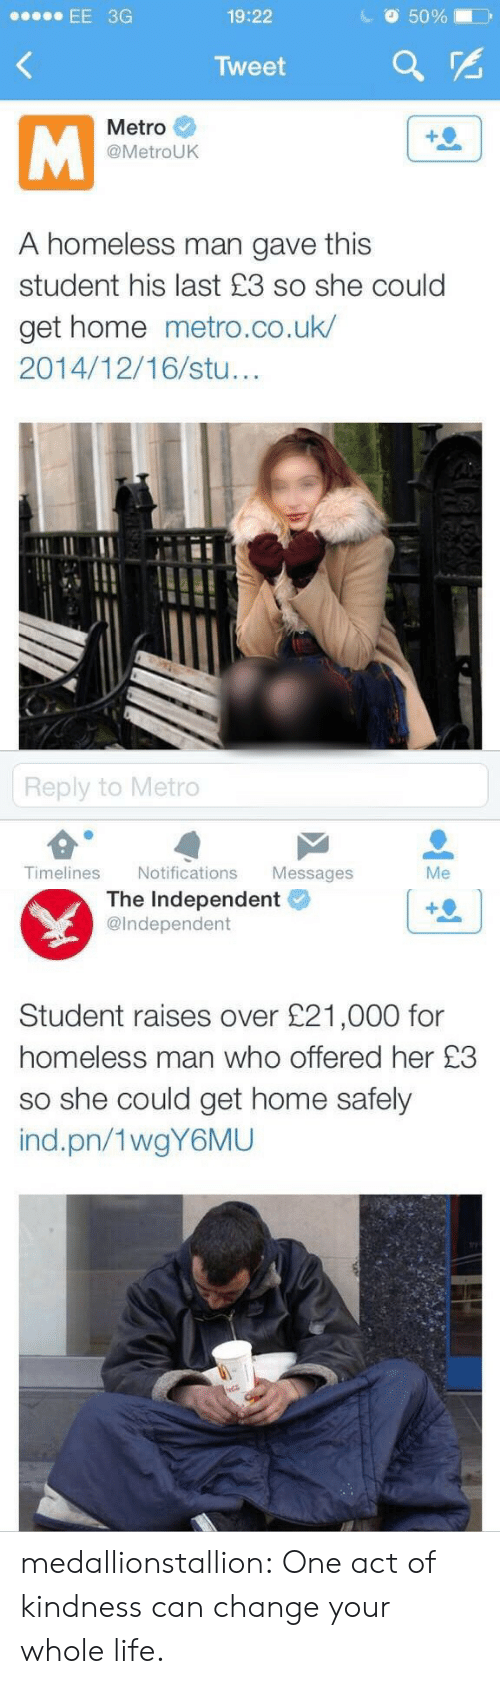 homeless man: EE 3G  19:22  50%  Tweet  Metro  @MetroUK  A homeless man gave this  student his last £3 so she could  get home metro.co.uk/  2014/12/16/stu  Reply to Metro  Timelines Notifications Messages  Me   The Independent  @Independent  Student raises over £21,000 for  homeless man who offered her £3  so she could get home safely  ind.pn/1wgY6MU medallionstallion:  One act of kindness can change your whole life.